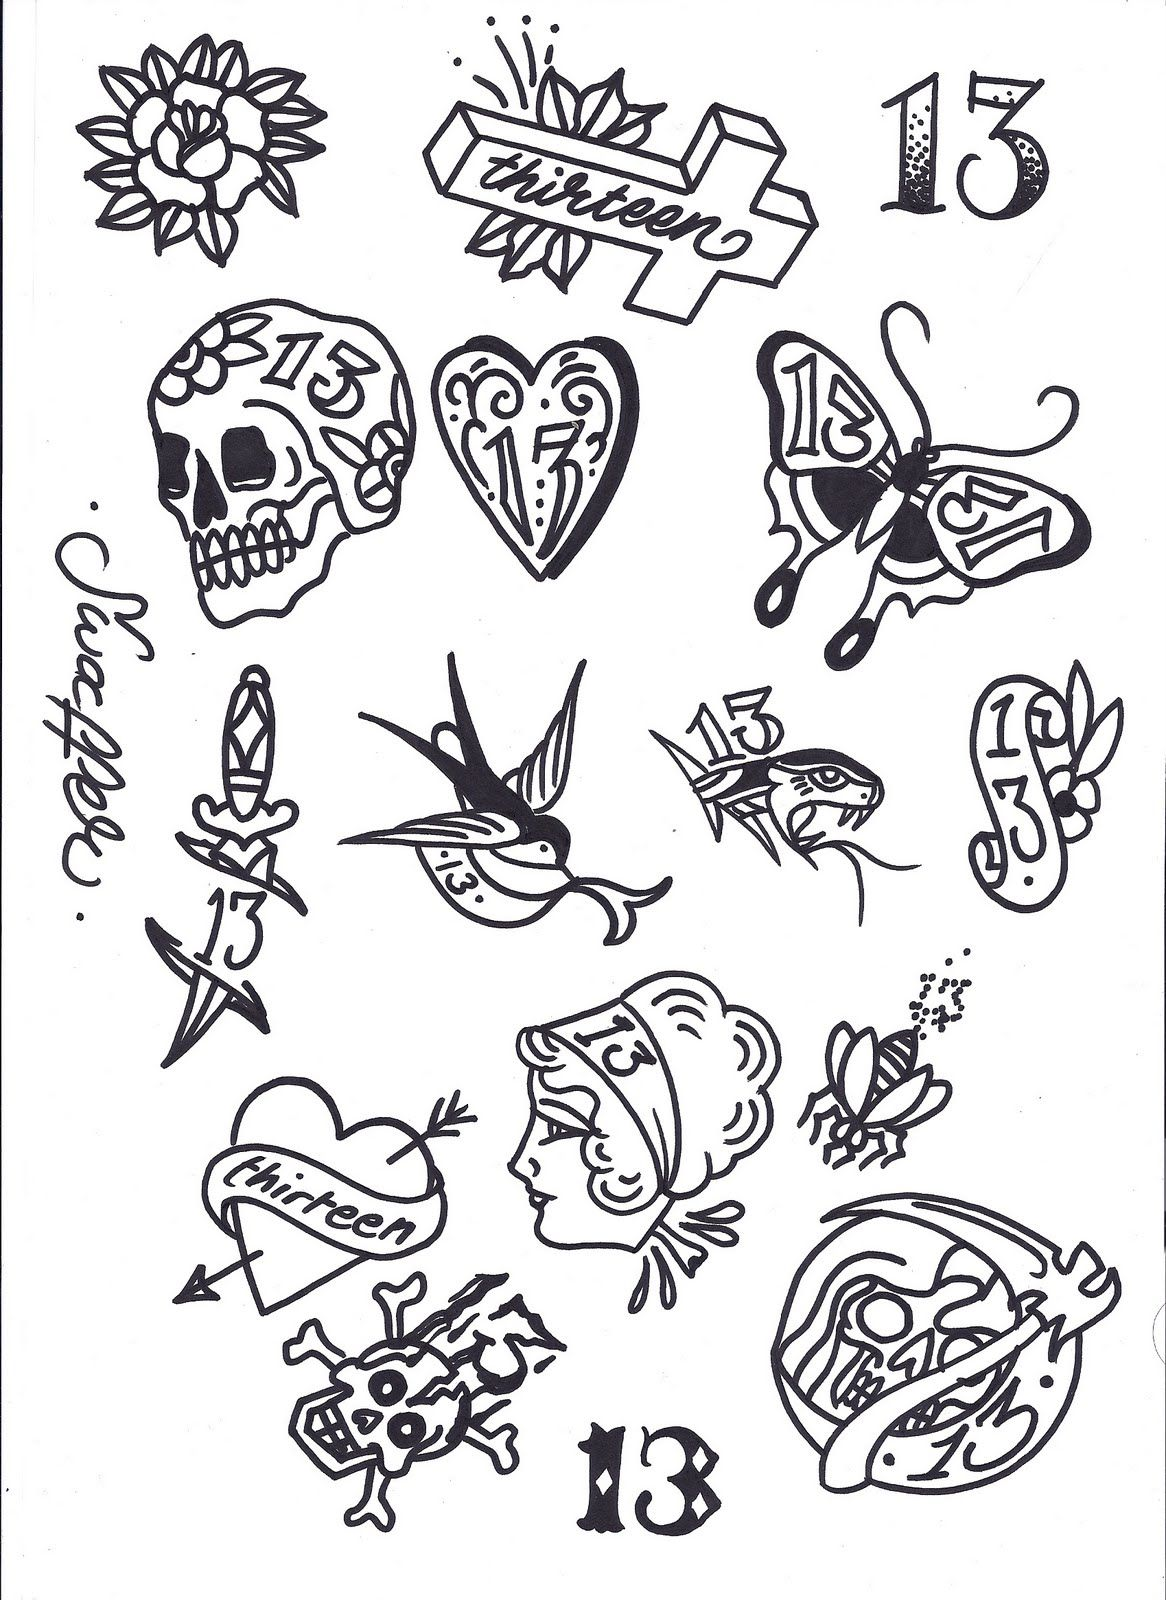 Friday 13th Tattoo Flash Art 13 tattoos, Flash tattoo